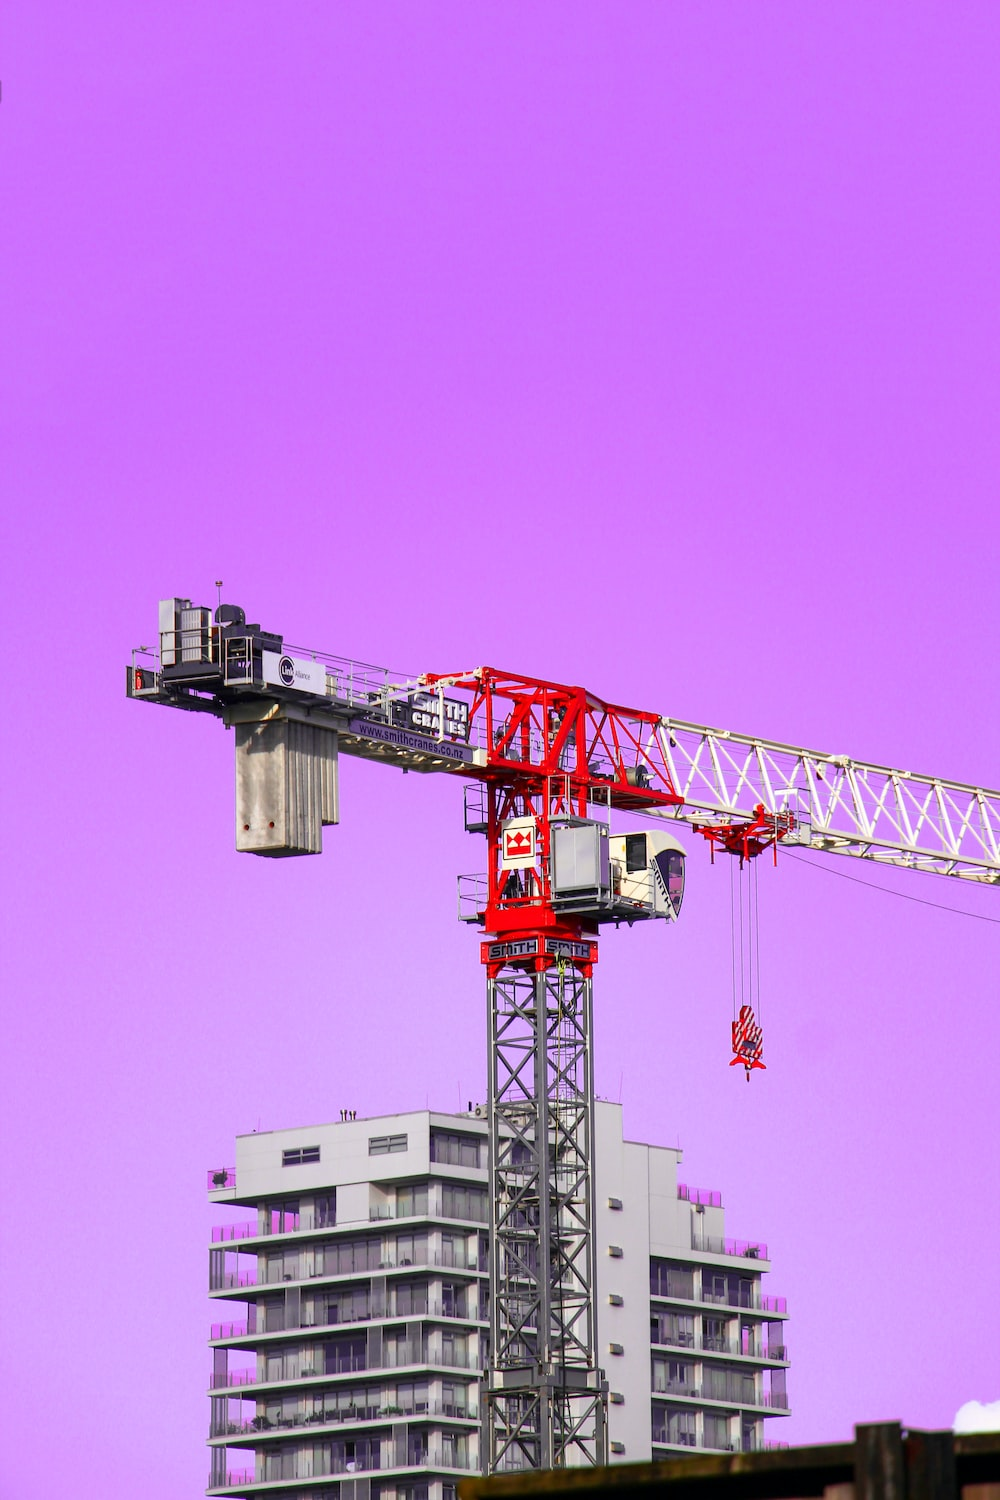 red and gray crane under blue sky during daytime